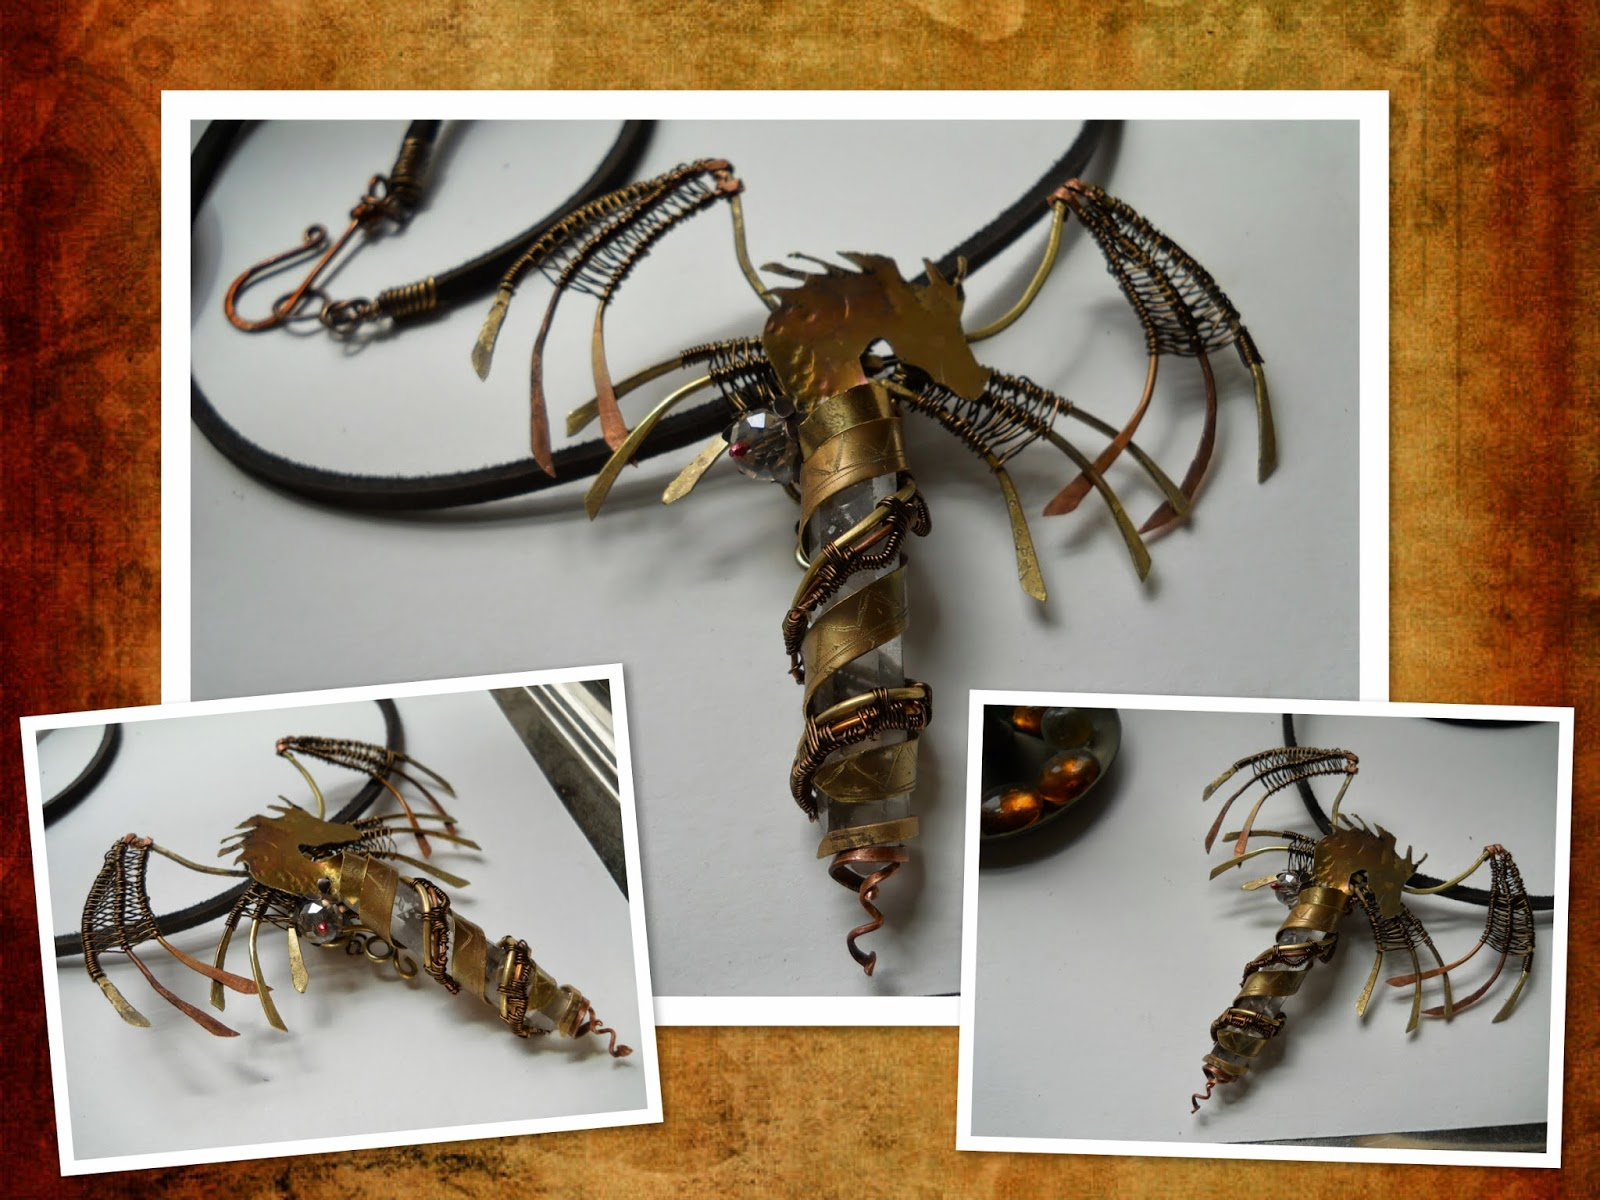 brass and copper dragon entwined around a quartz crystal point